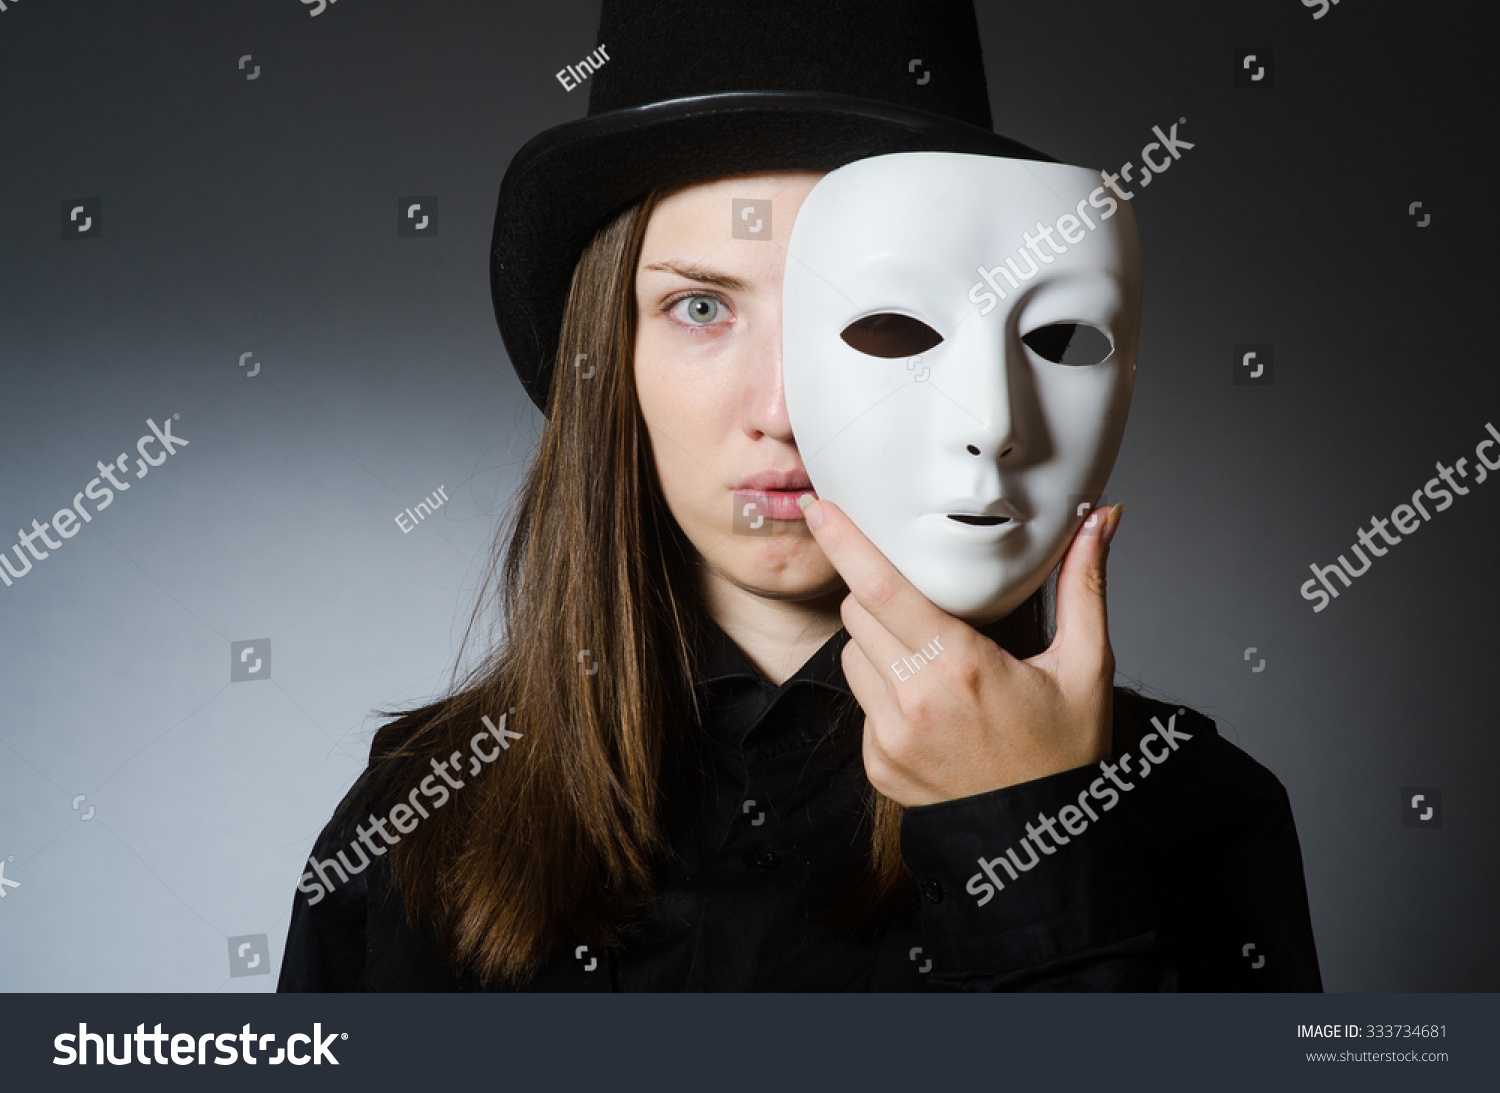 Woman Mask Funny Concept Stock Photo 333734681 - Shutterstock